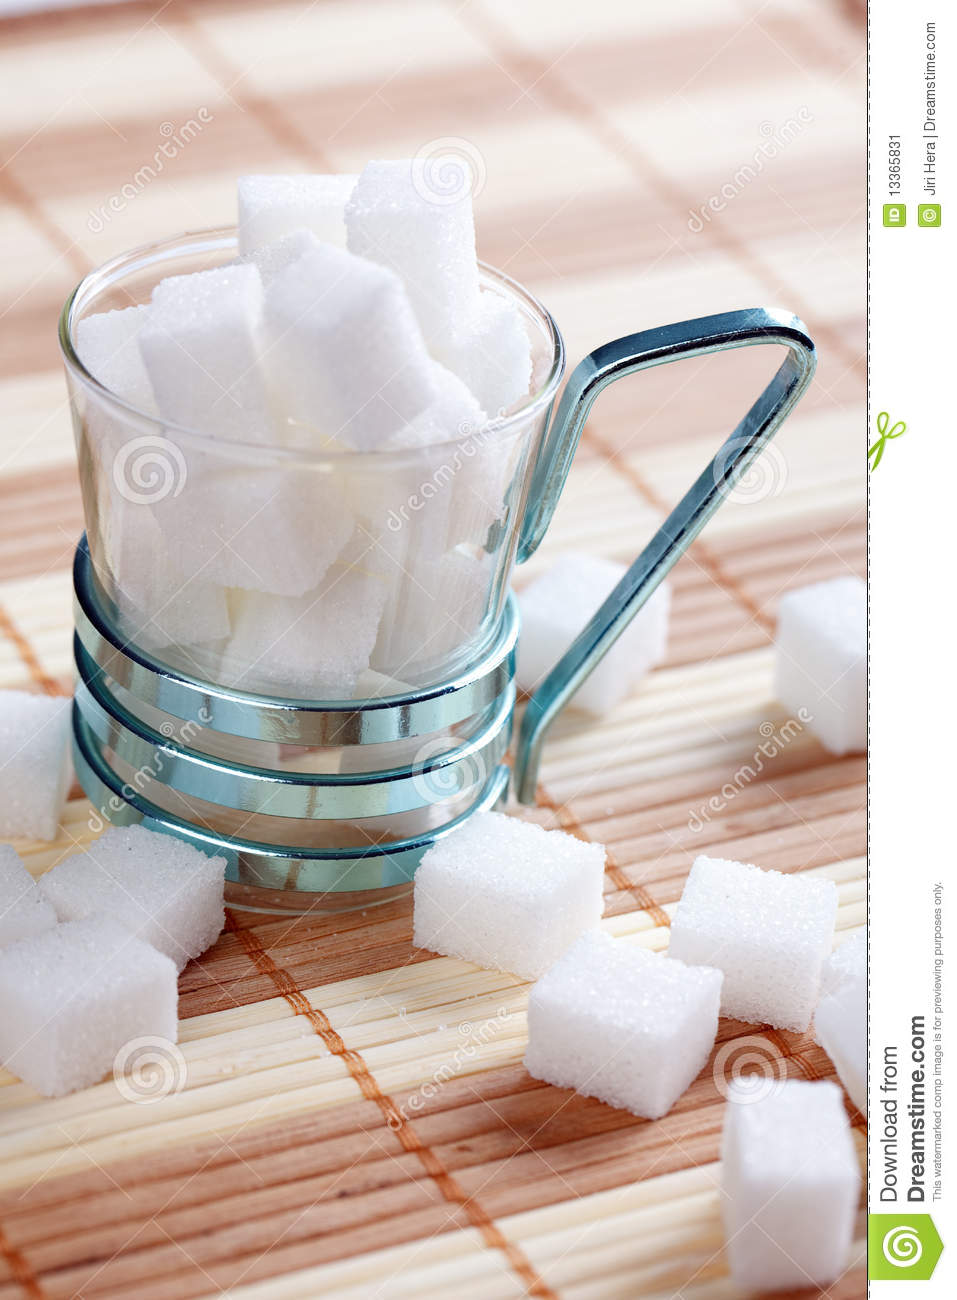 Sugar Cube In Cup Stock Image Image 13365831